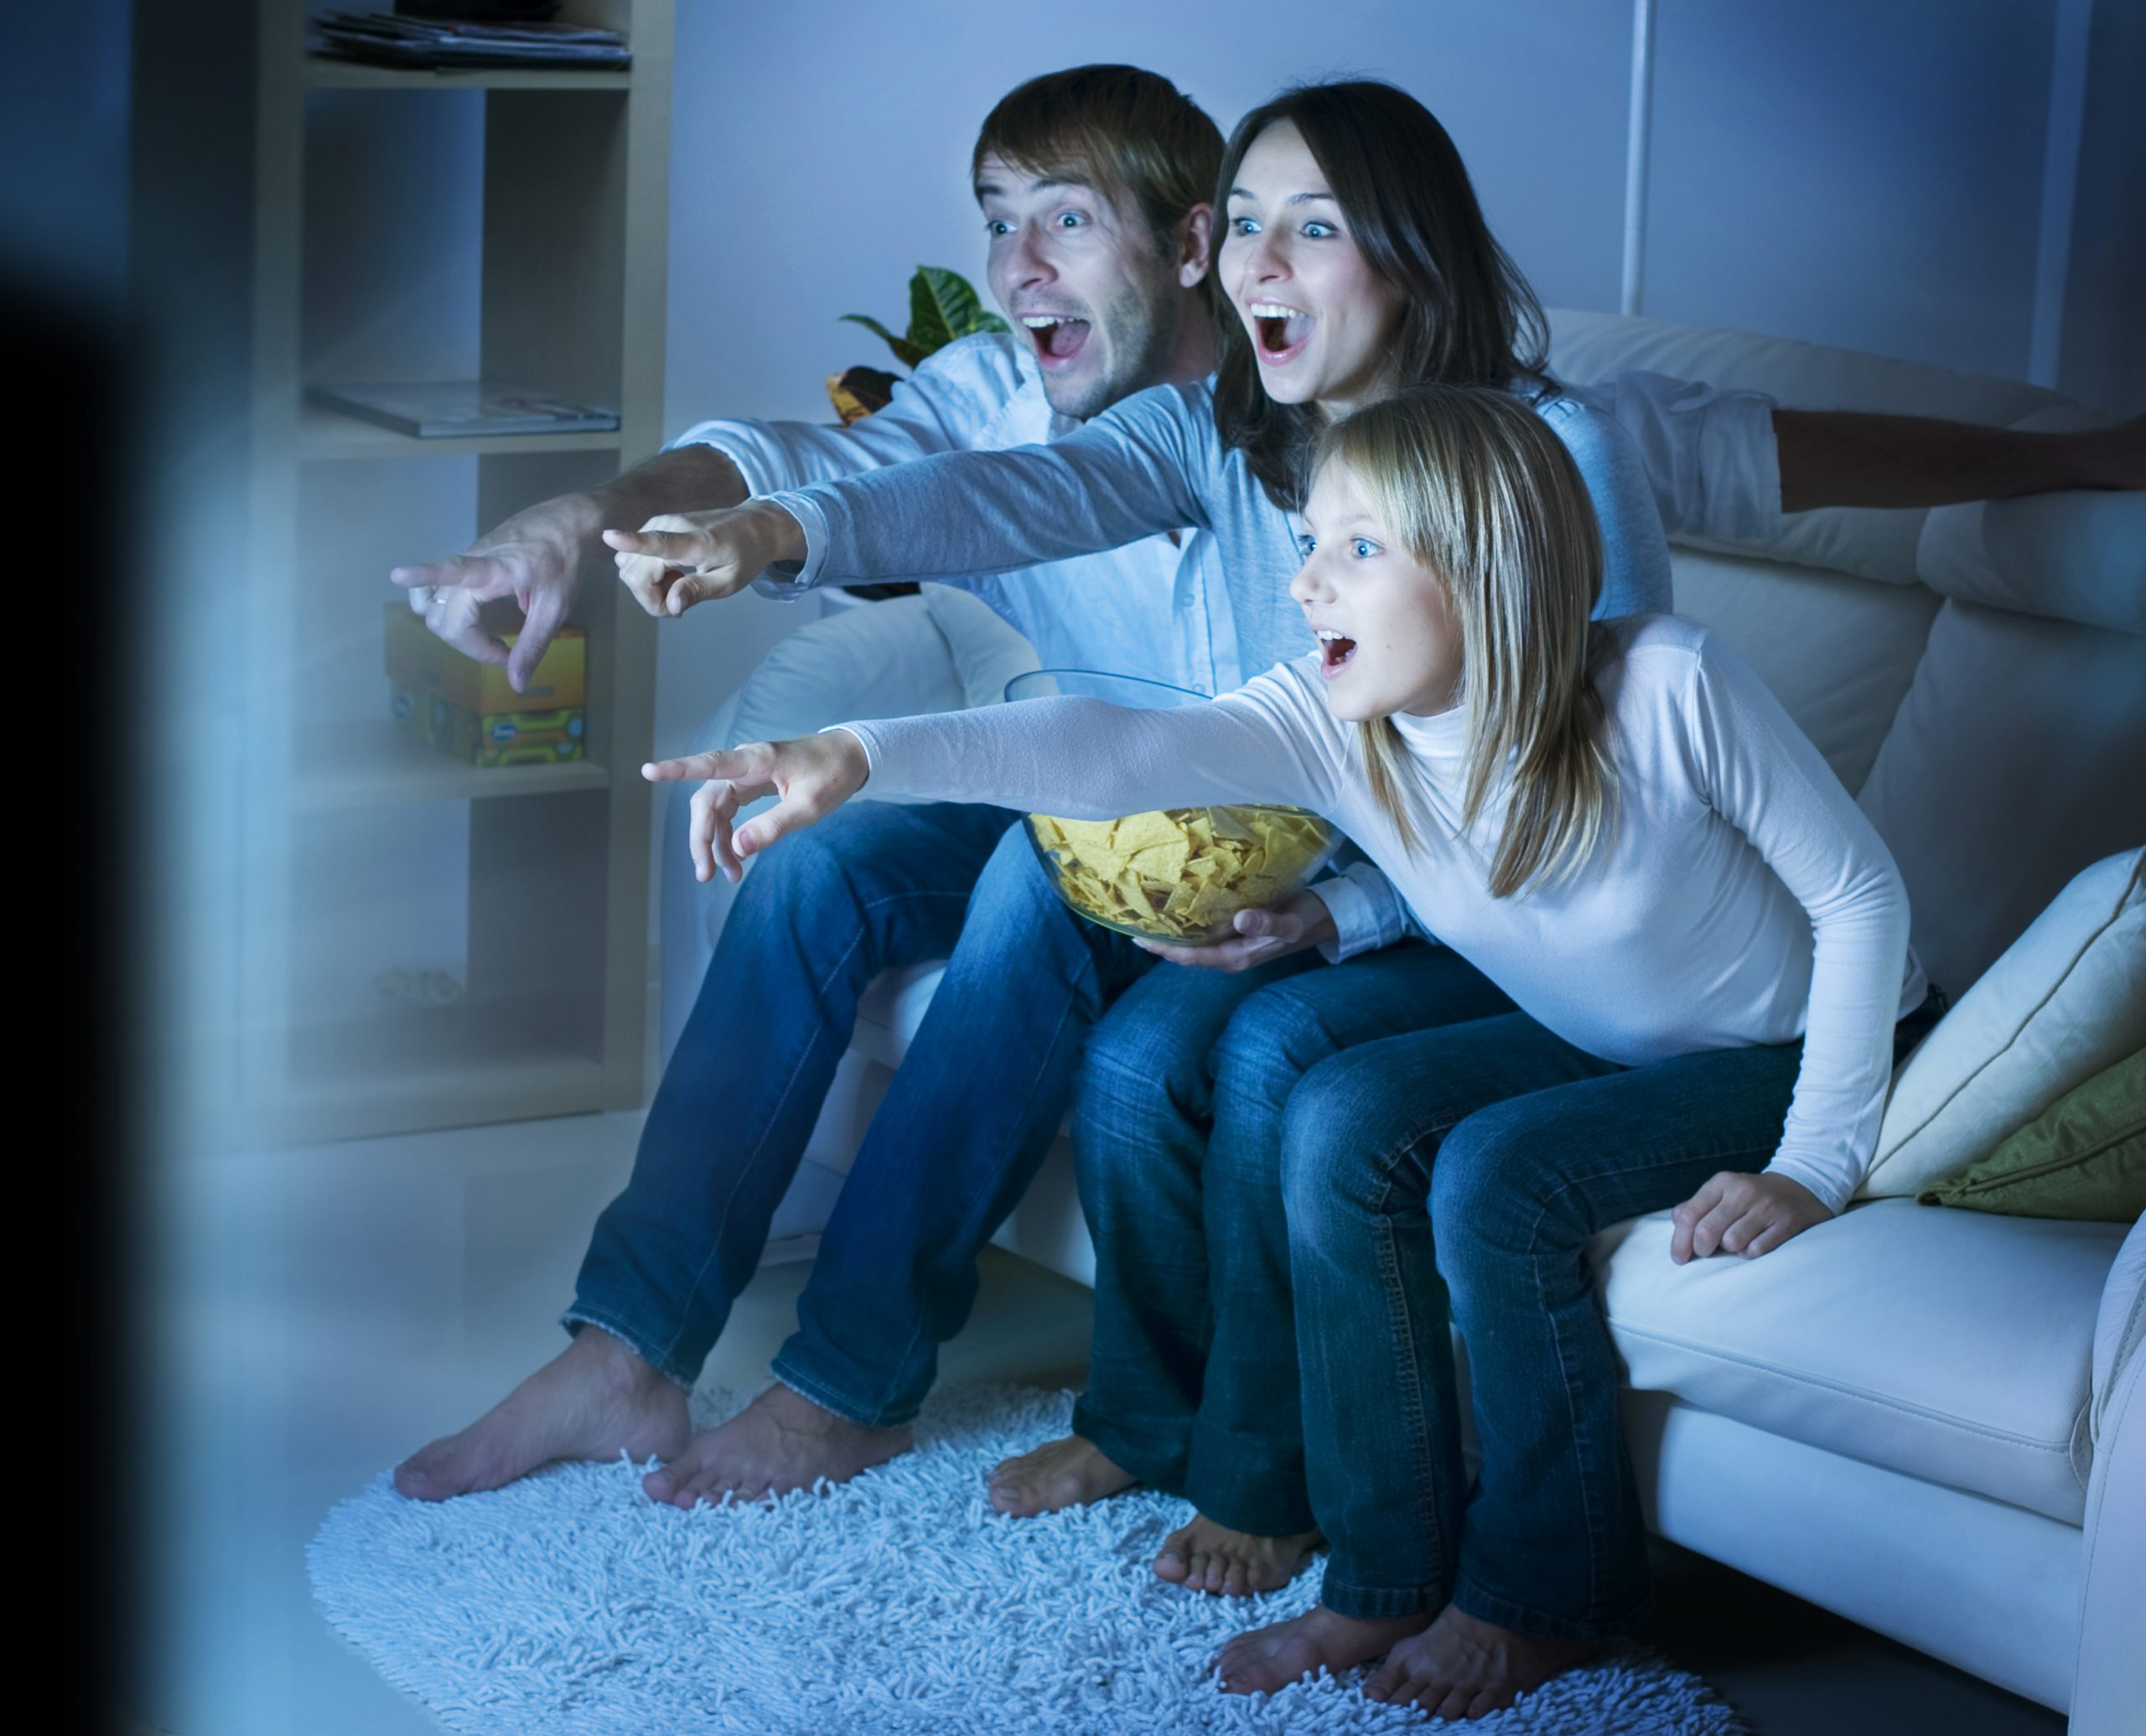 Enjoy Amazing Movie Experience At Home